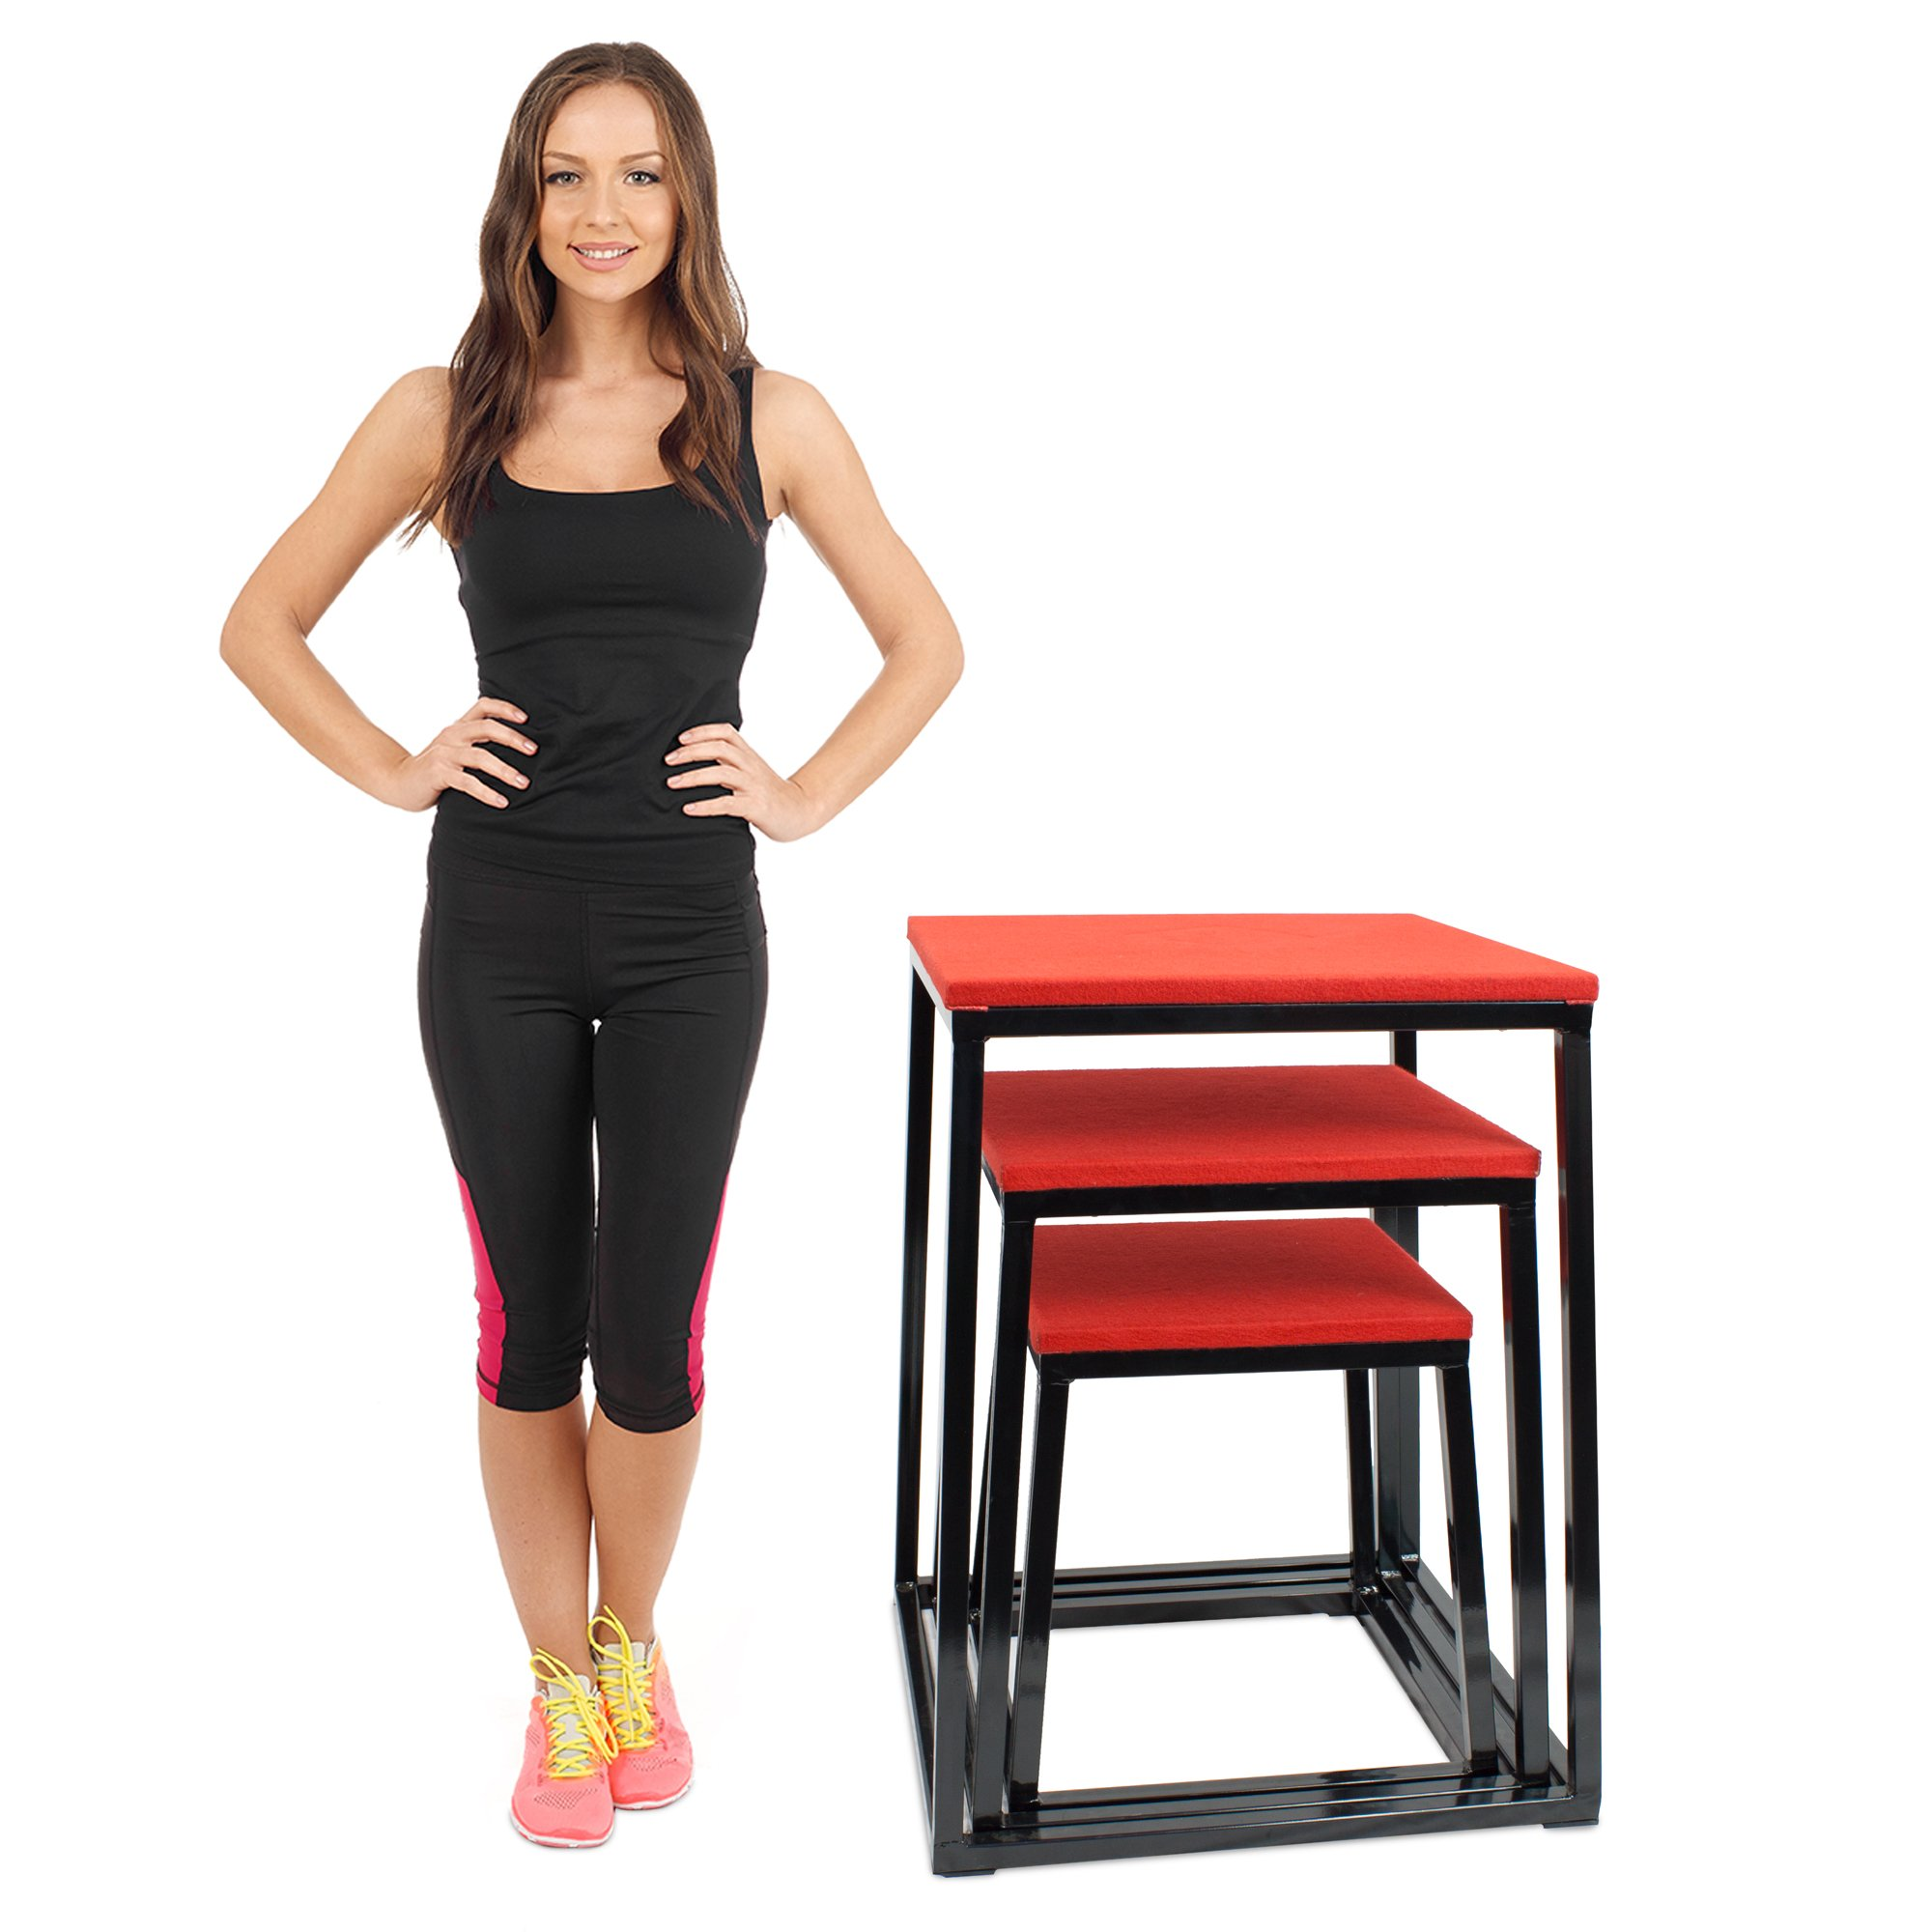 Set of 3 Plyometric Jump Boxes – Step Platform, Fitness Training & Conditioning Equipment for Increasing Vertical, Speed, & Stamina (18''/24''/30'') by Crown Sporting Goods by Crown Sporting Goods (Image #2)